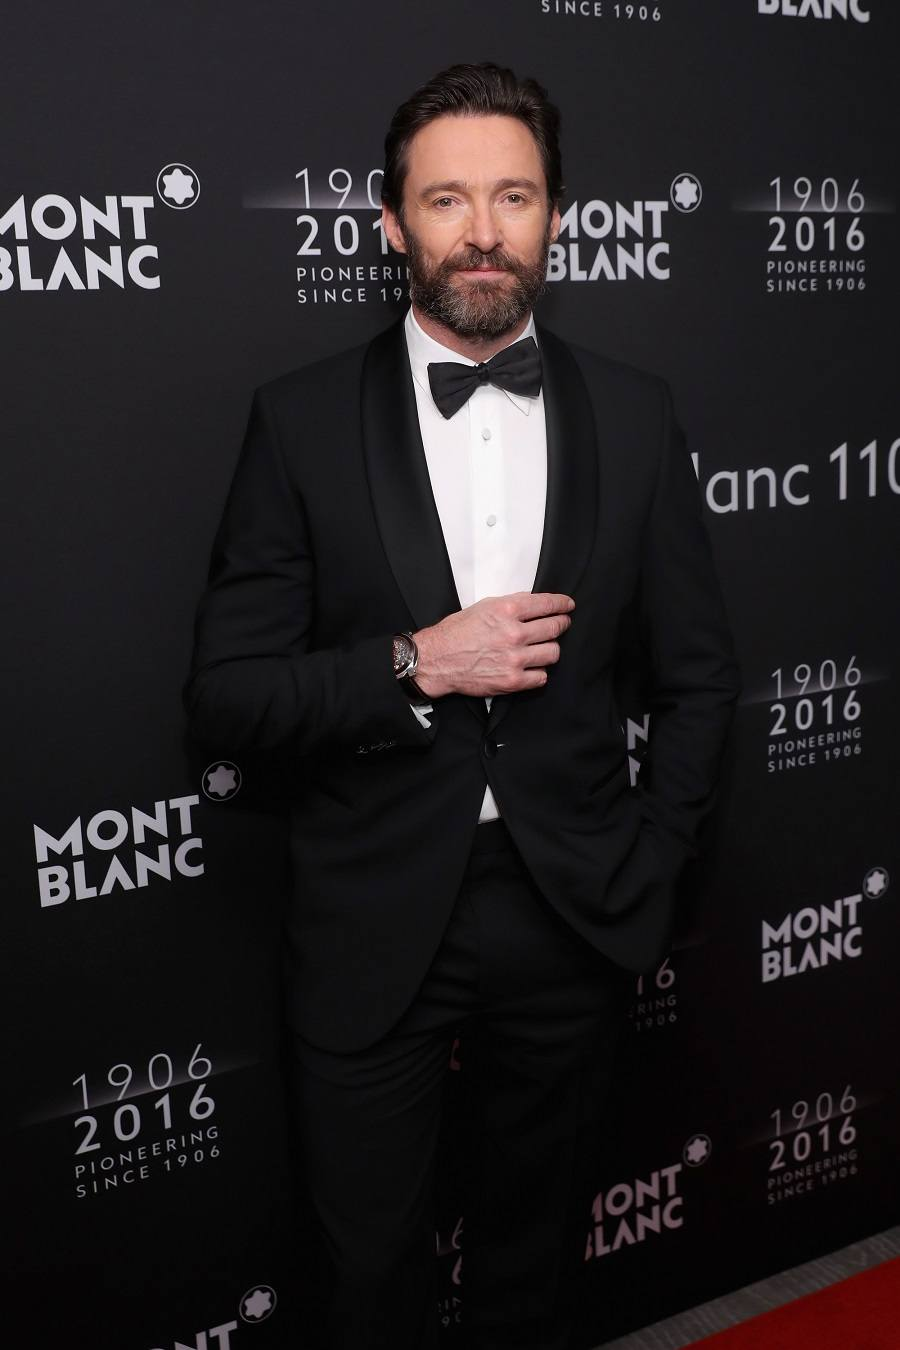 Hugh Jackman attends the Montblanc 110 Year Anniversary Gala Dinner